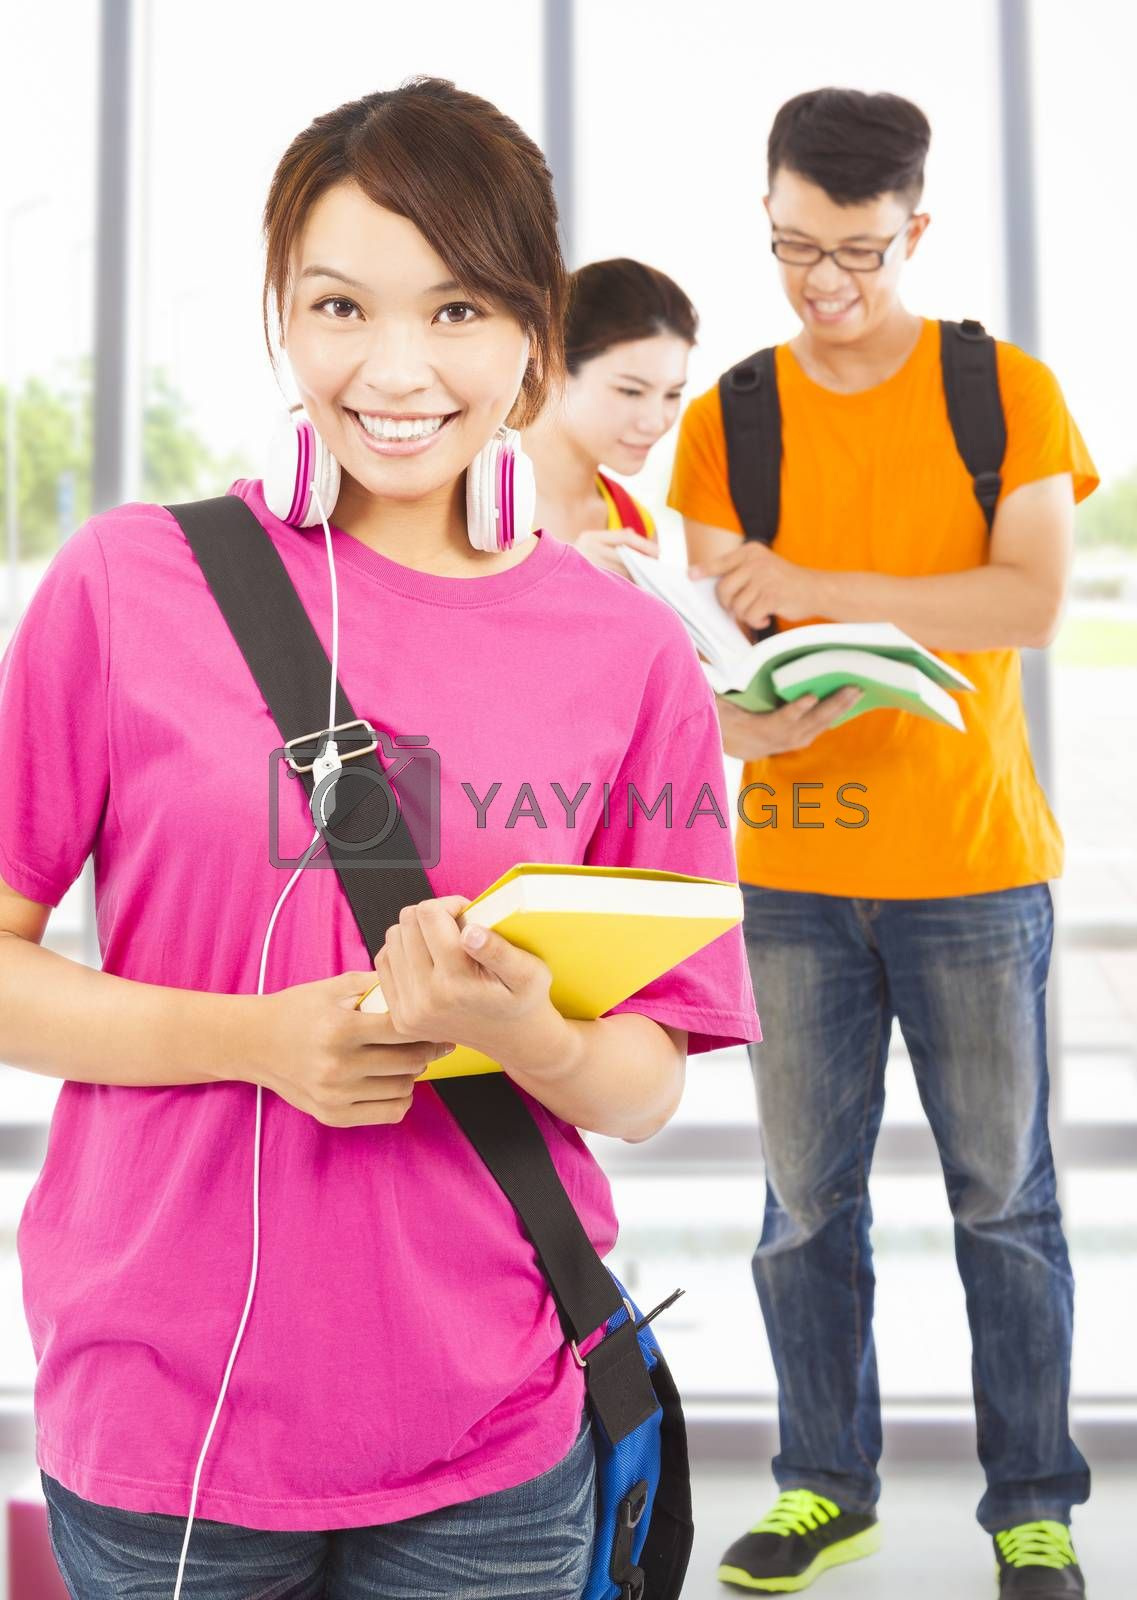 Royalty free image of pretty young student holding books and earphone with classmates by tomwang